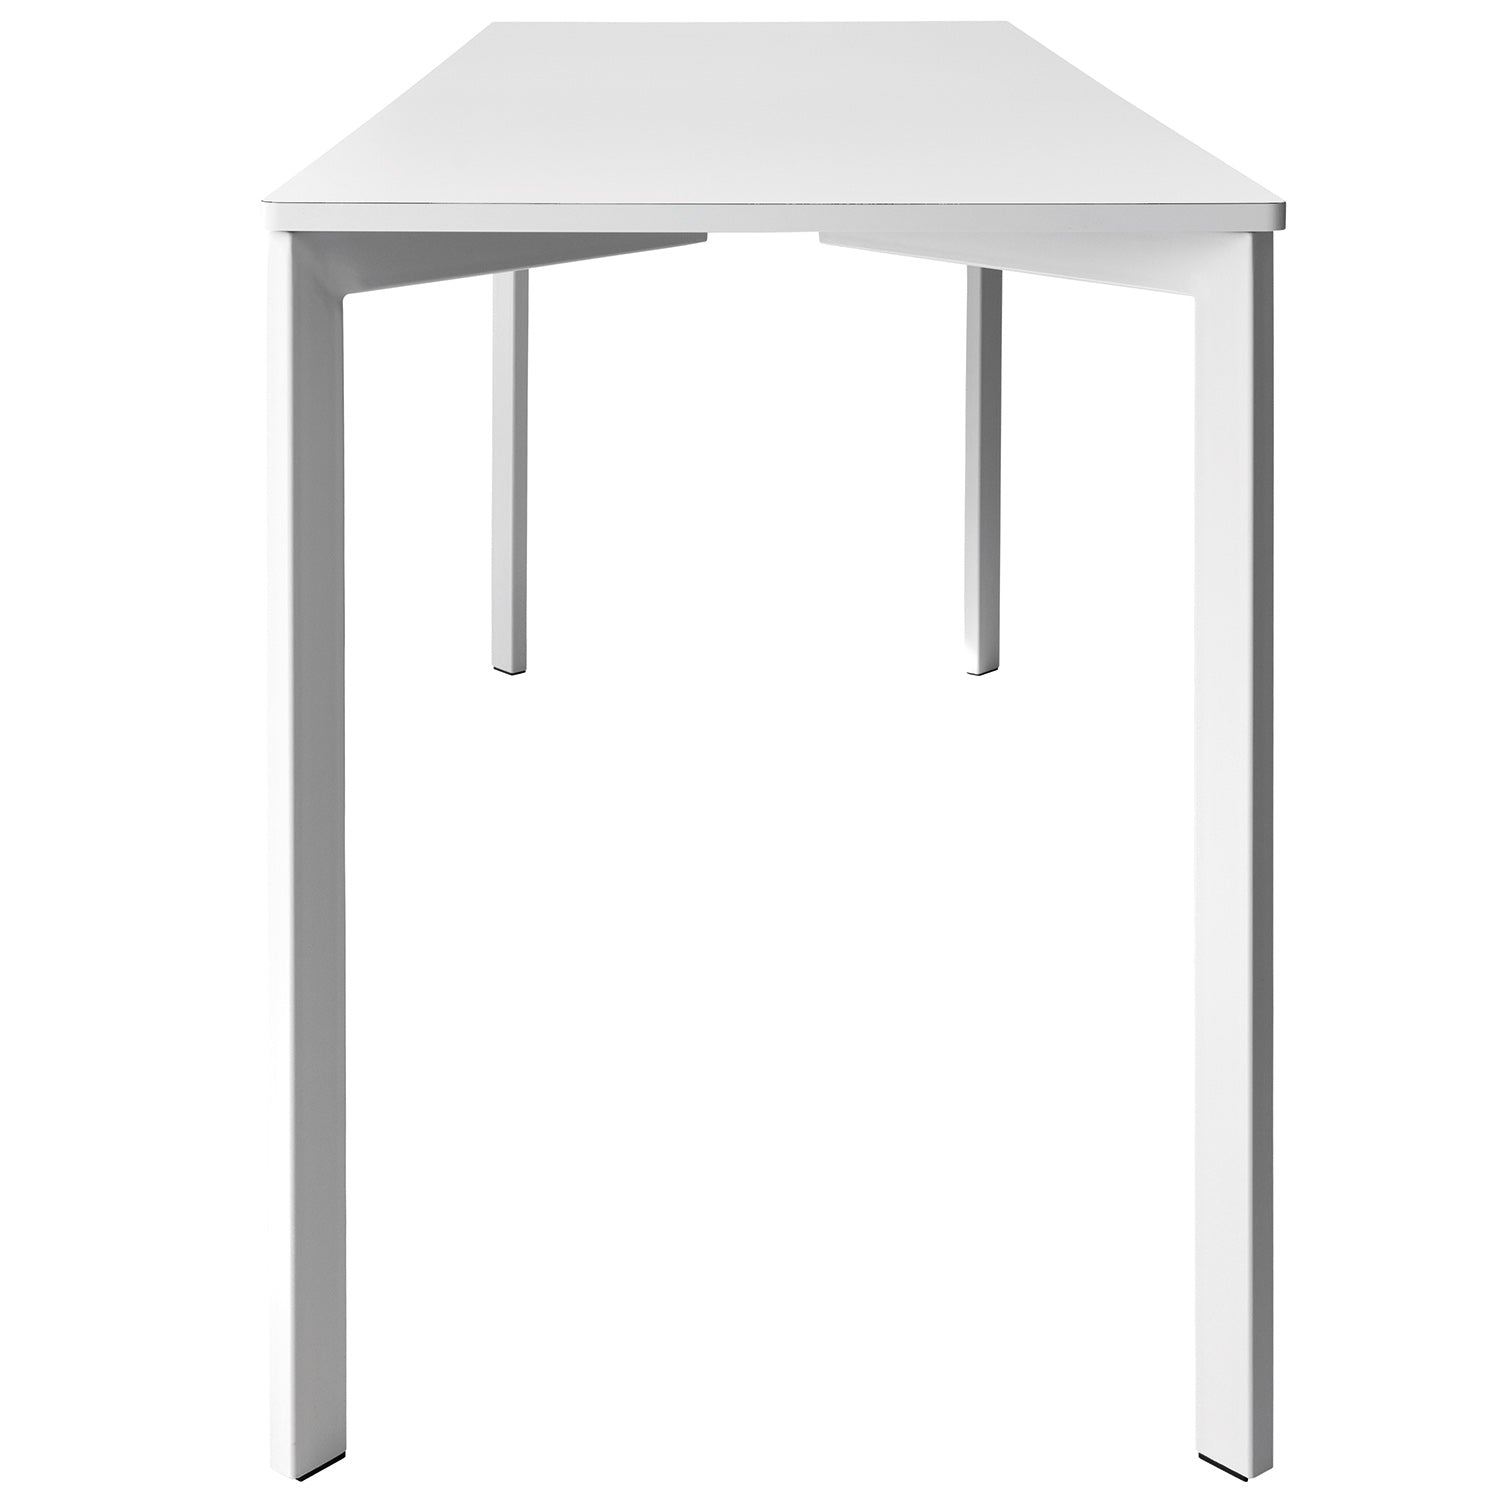 Y! Bar Table: Large + Pure White